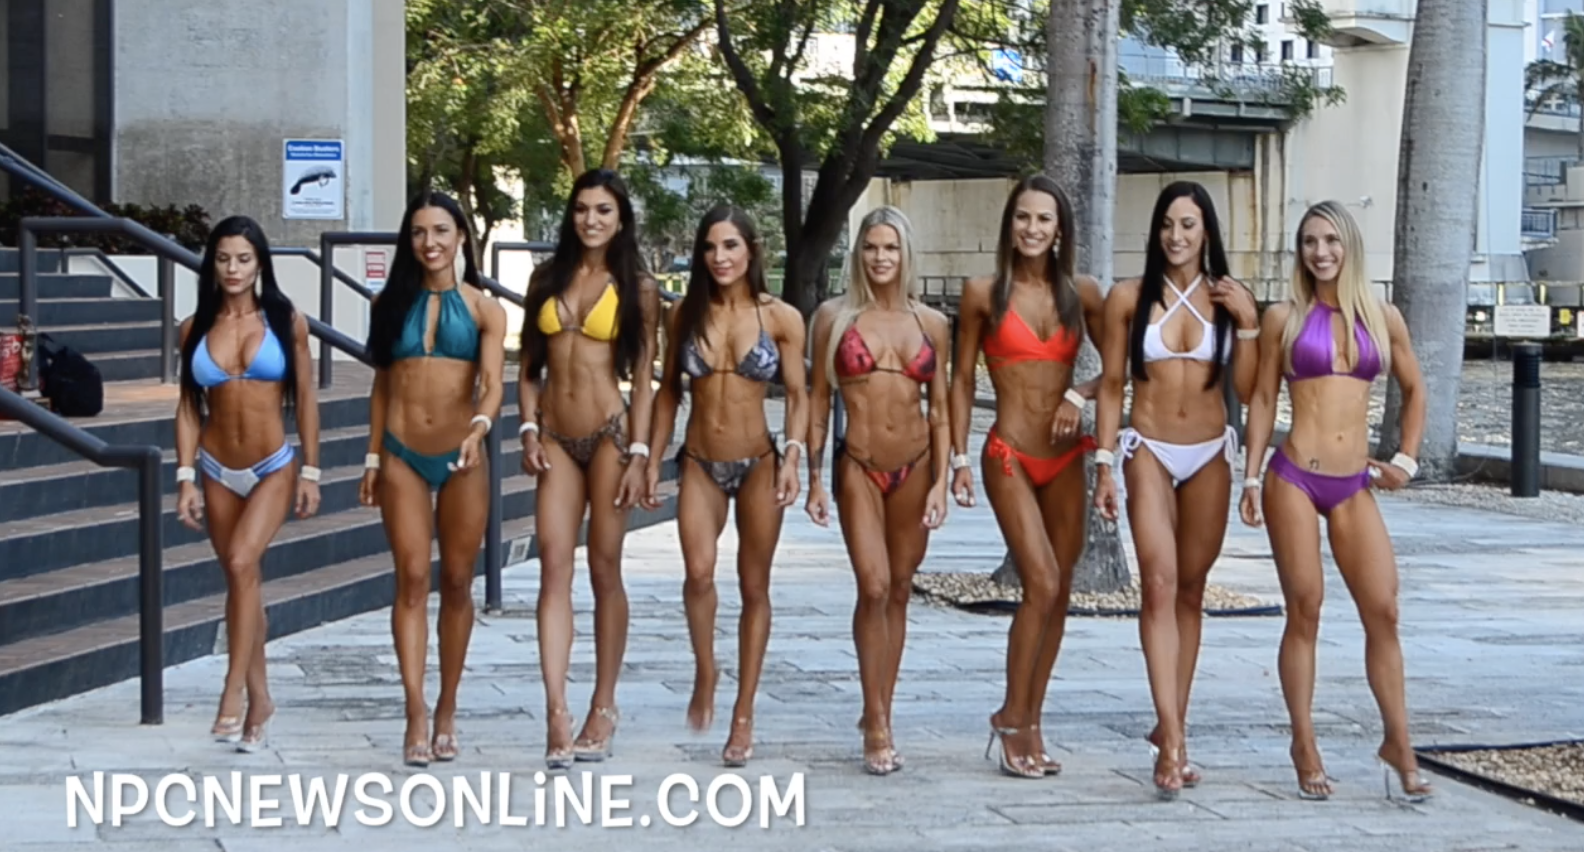 2017 J.M. Manion  NPC Nationals Sunday Bikini Winners Shoot Video